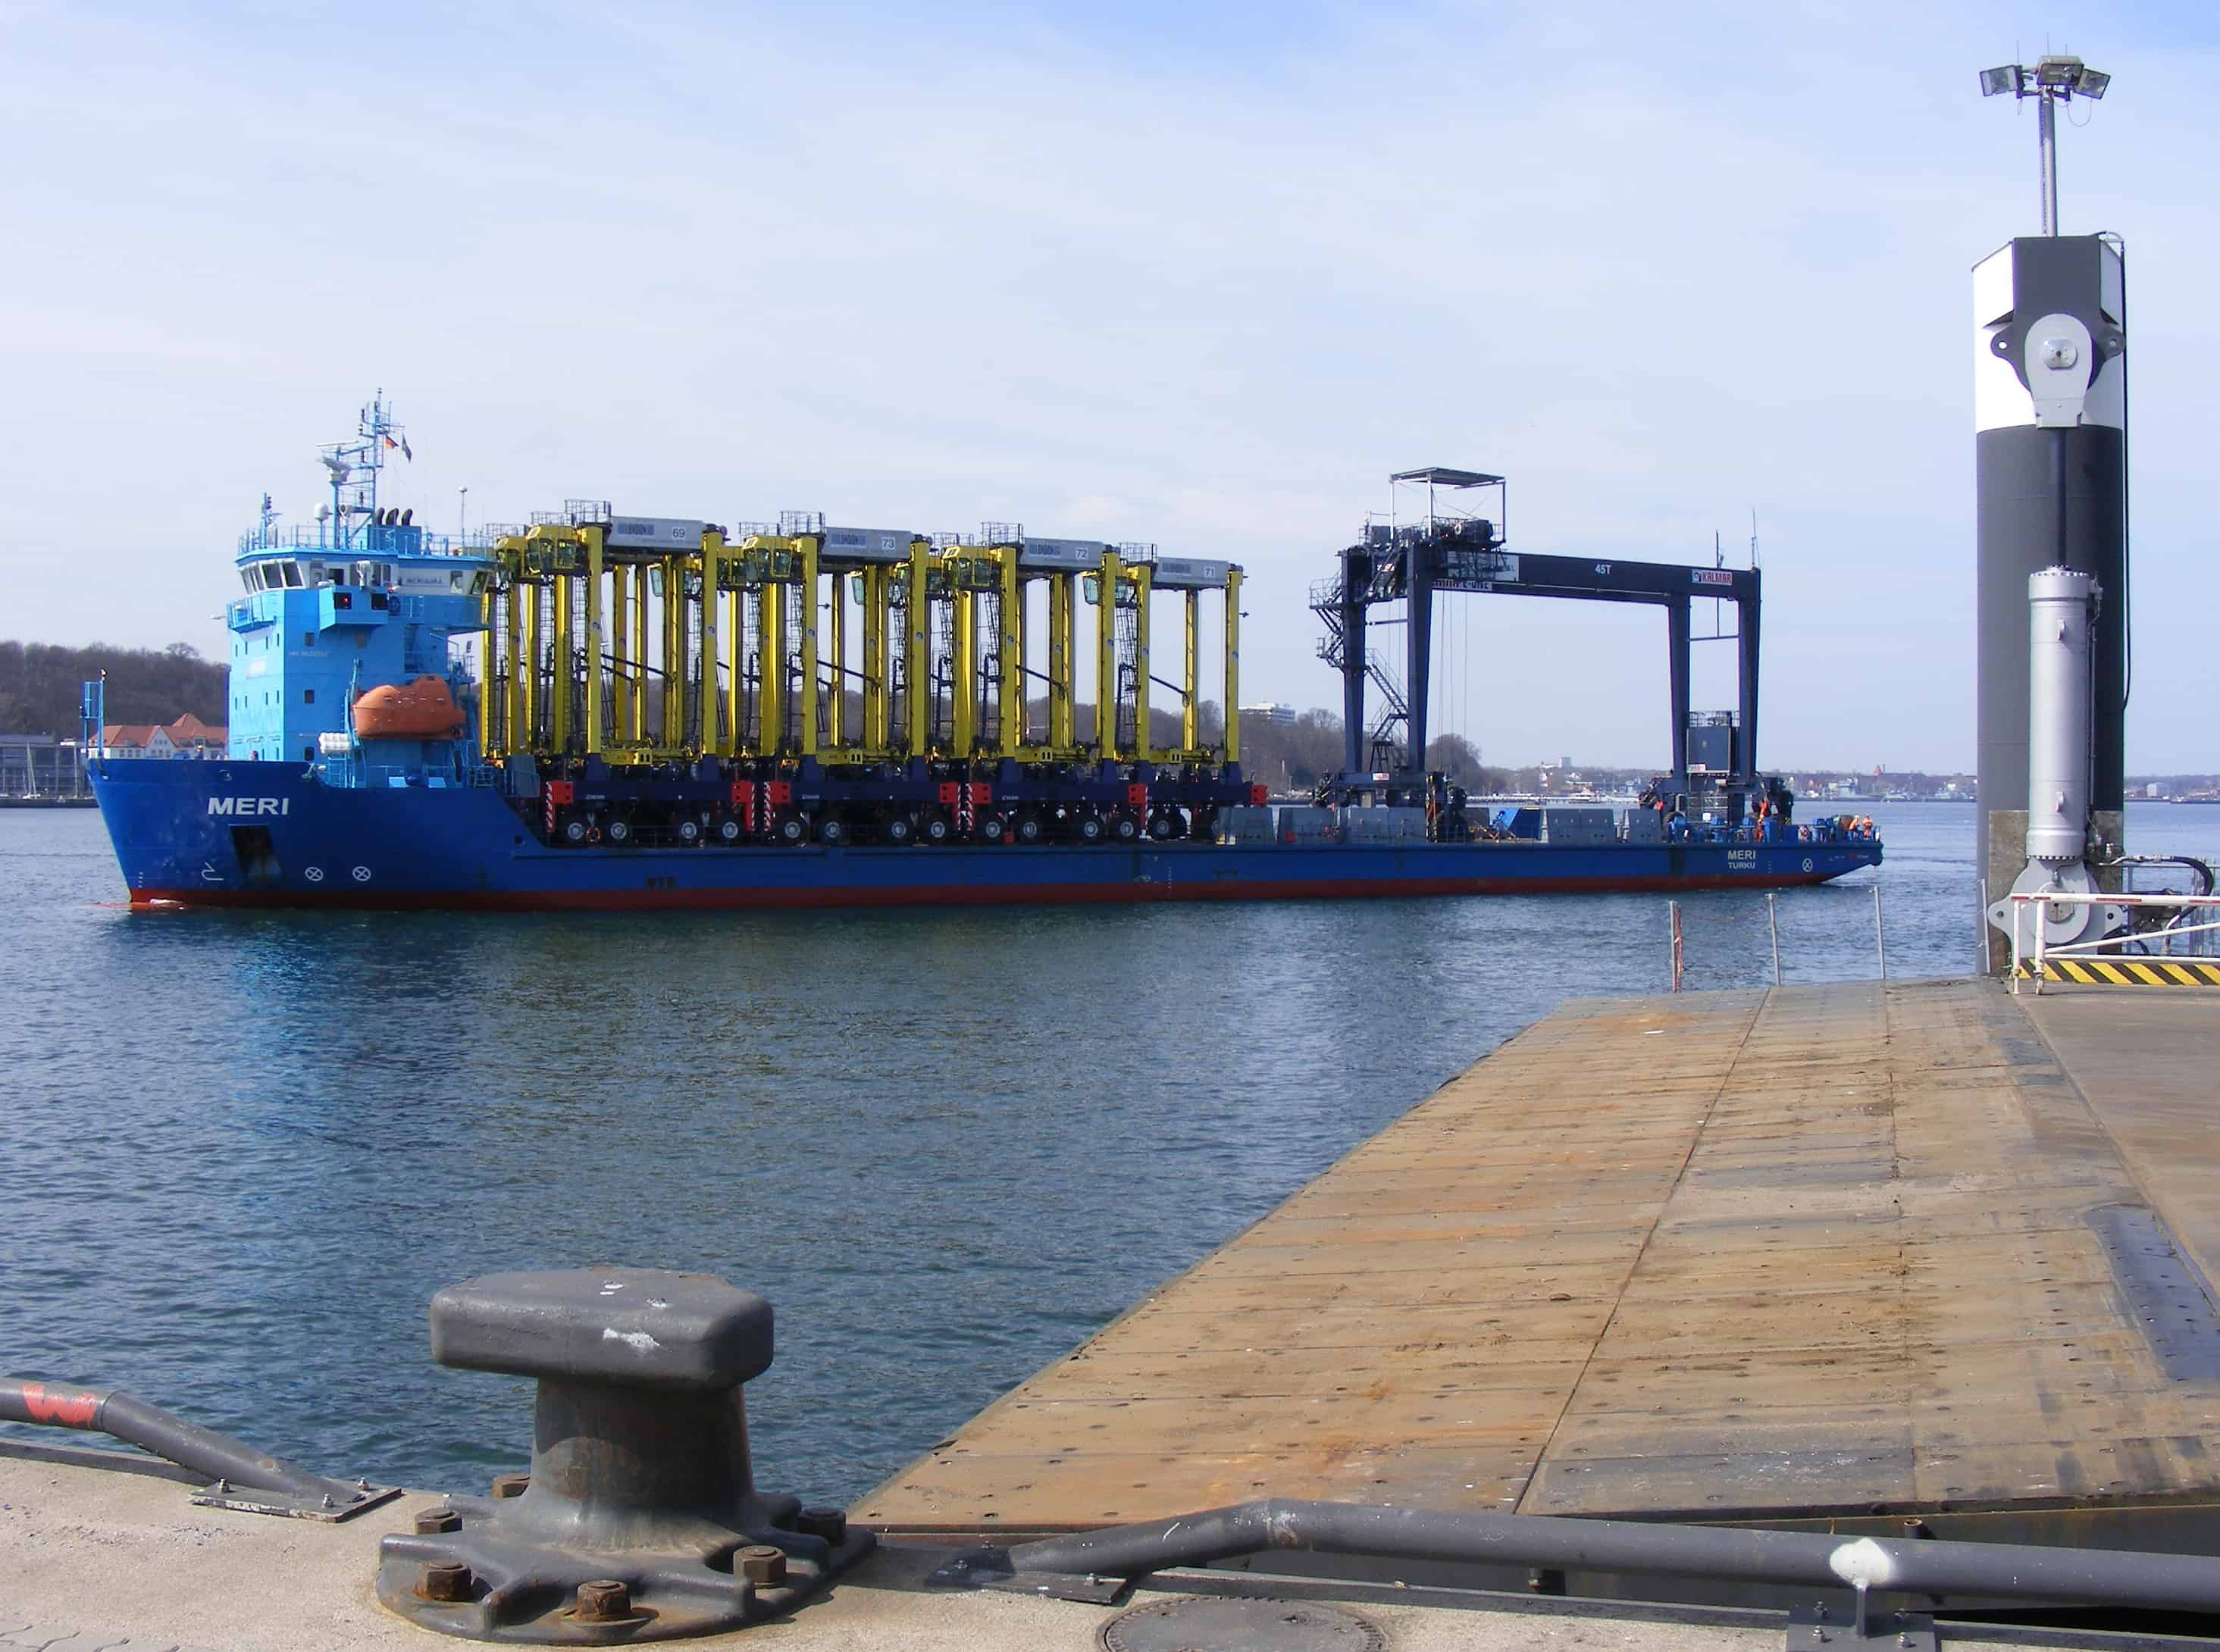 Kiel's intermodal RTG arrives